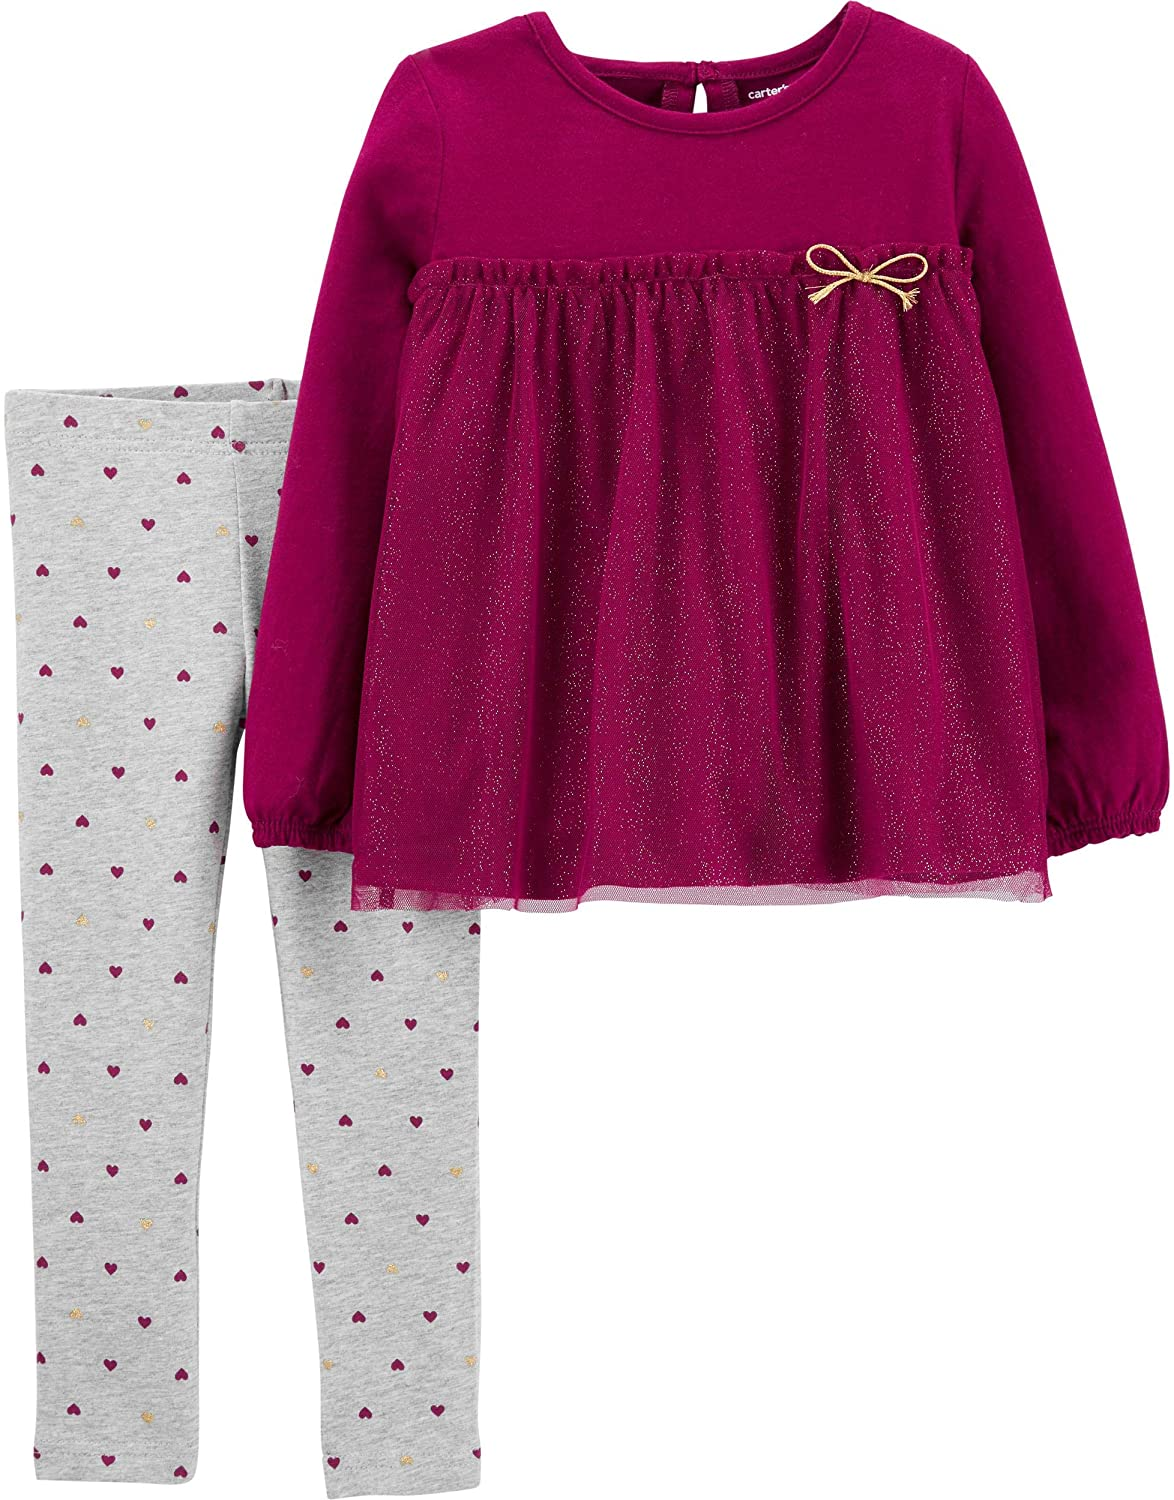 Carters Girls 2-Piece Top and Legging Set (4T, Babydoll/Heather)